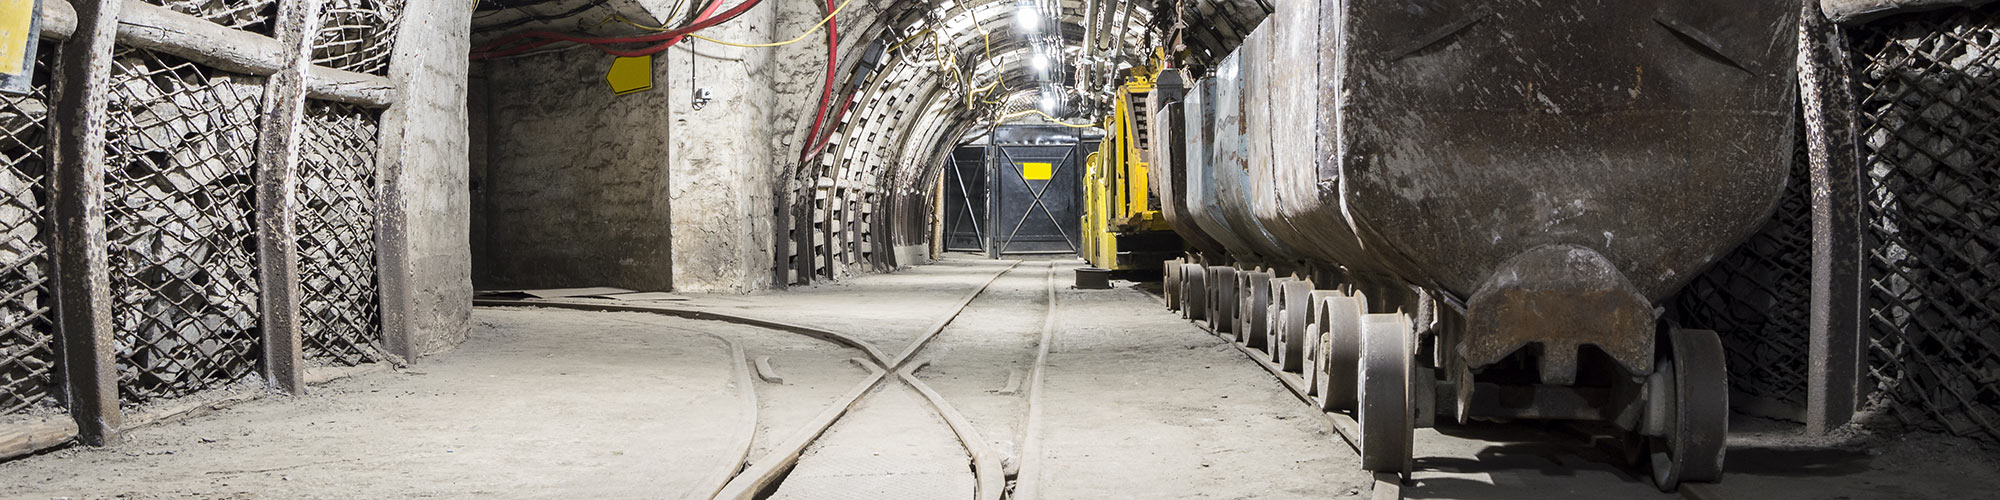 Electrically safe in the mining sector